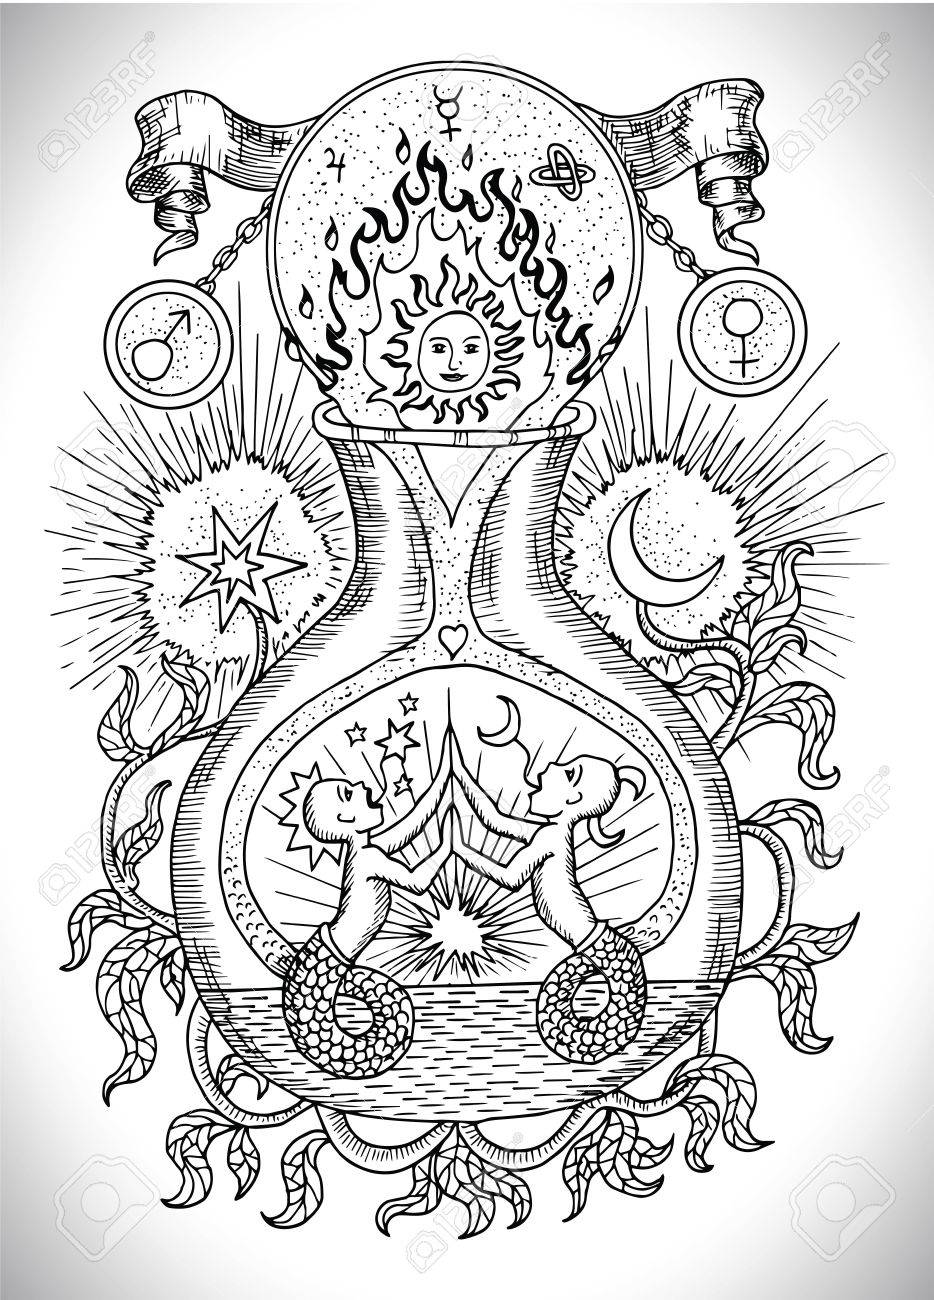 Black And White Drawing With Mystic Spiritual And Alchemical